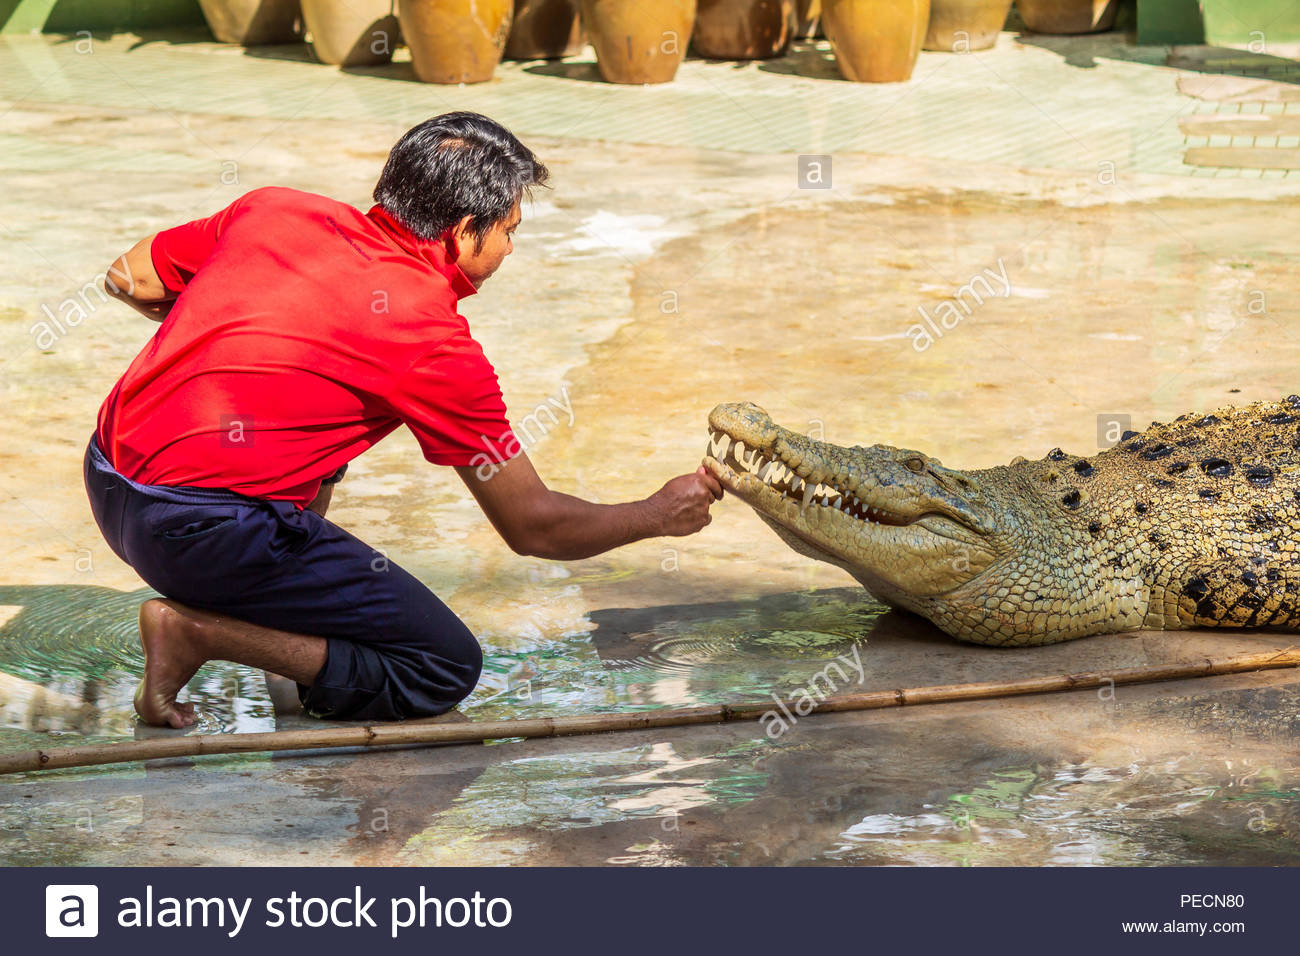 Man doing a Stunt with a Crocodile in the Crocodile Farm in Langkawi, Malaysia. - Stock Image